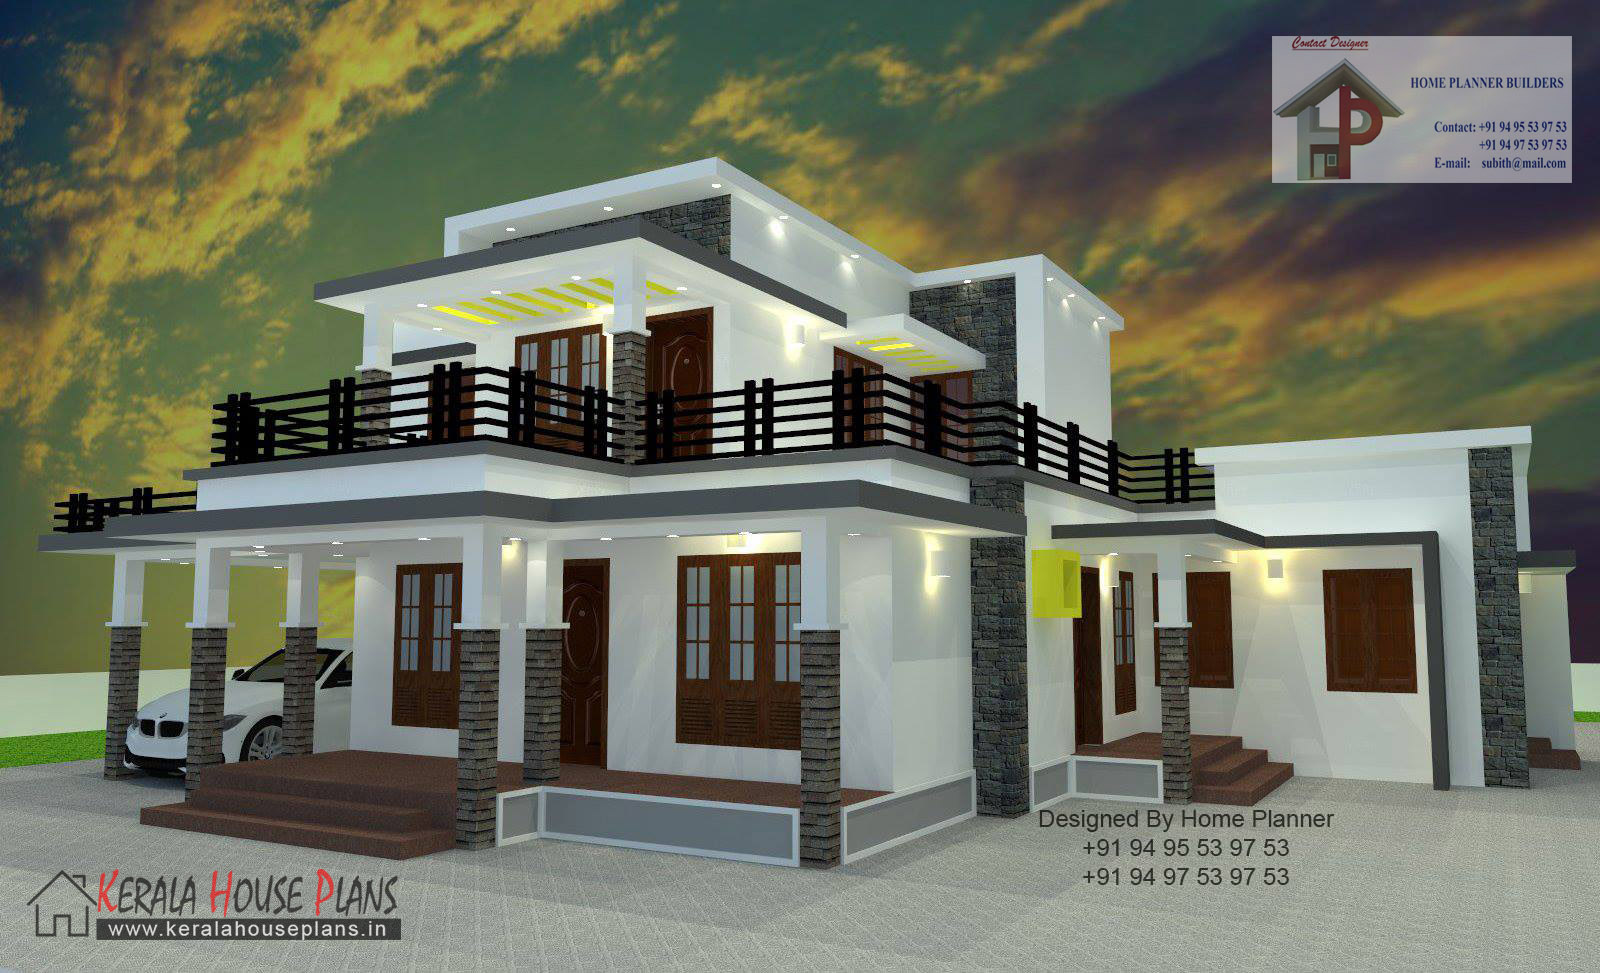 2000 sqft box type house kerala house plans designs for Houses and house plans